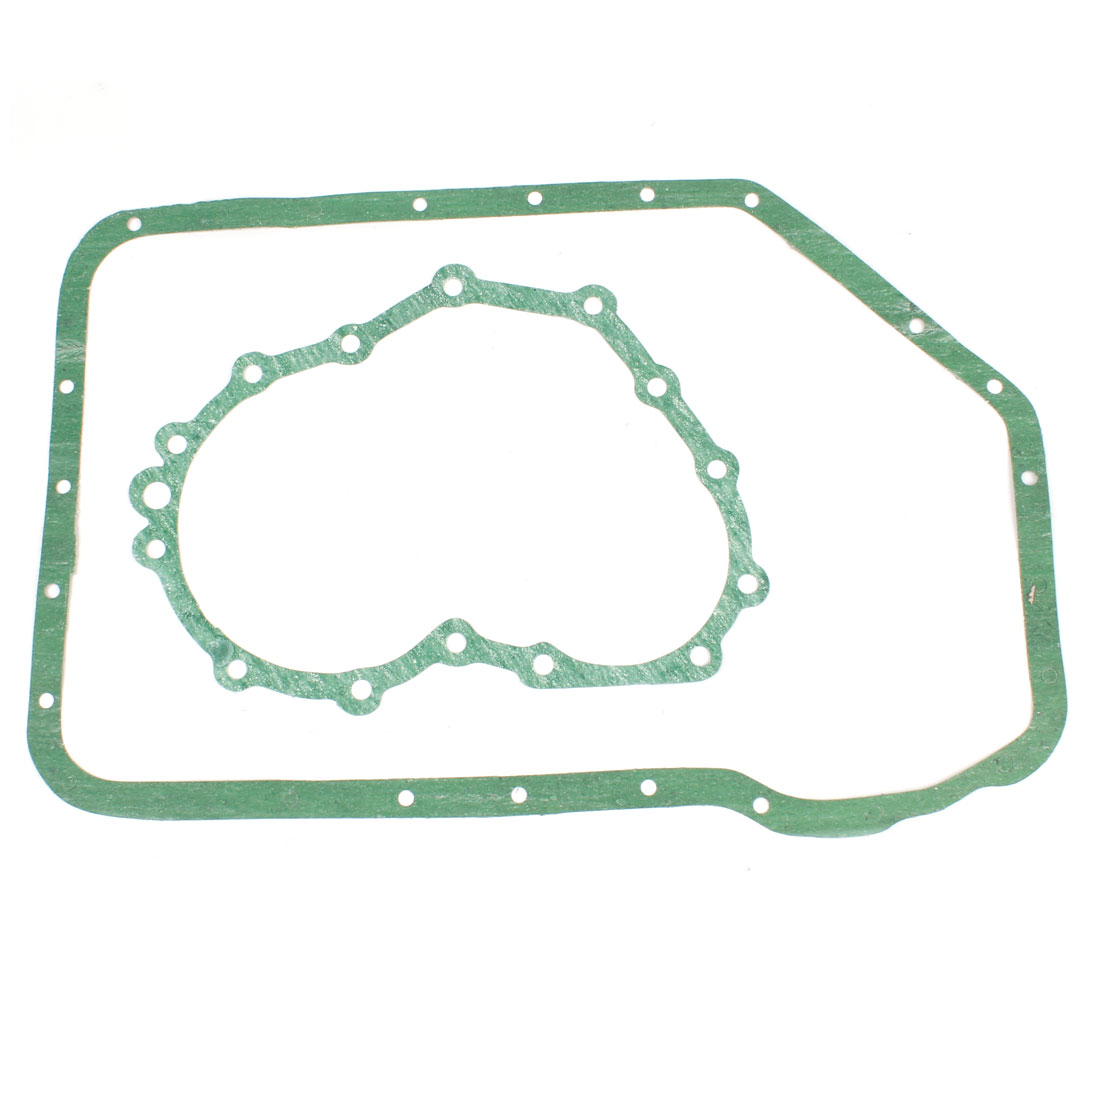 01V321371 Rubber Automatic Transaxle Transmission Gasket Seal for Automobile